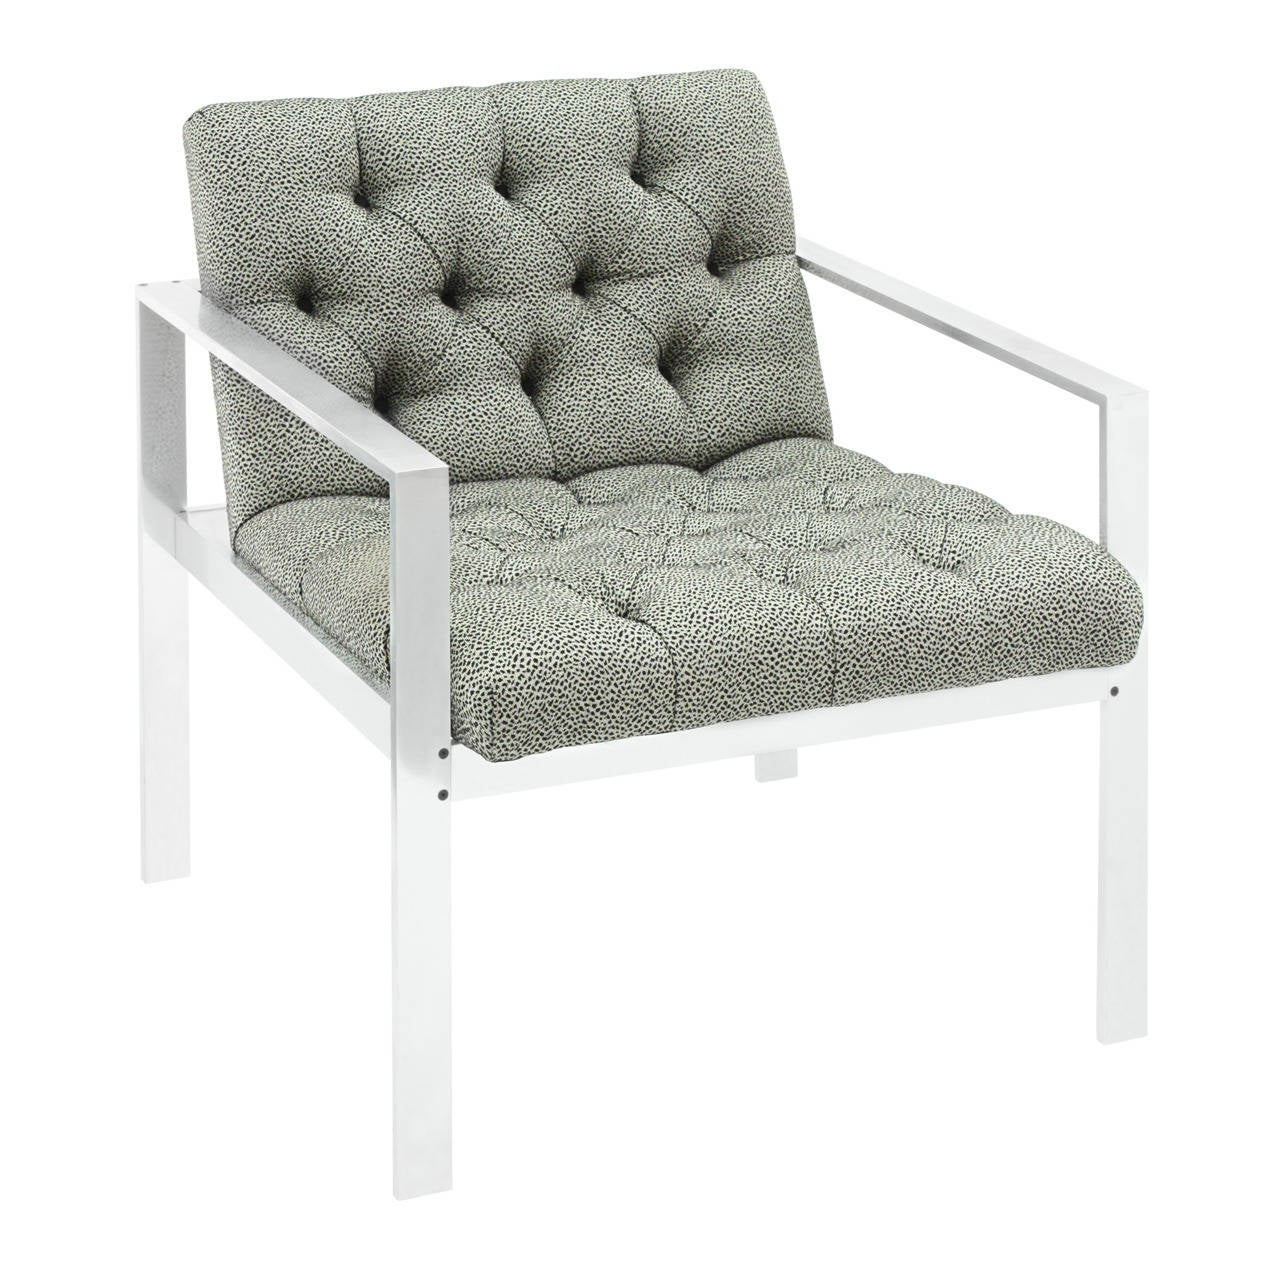 Lounge Chair with Aluminium Frame by Harvey Probber 1